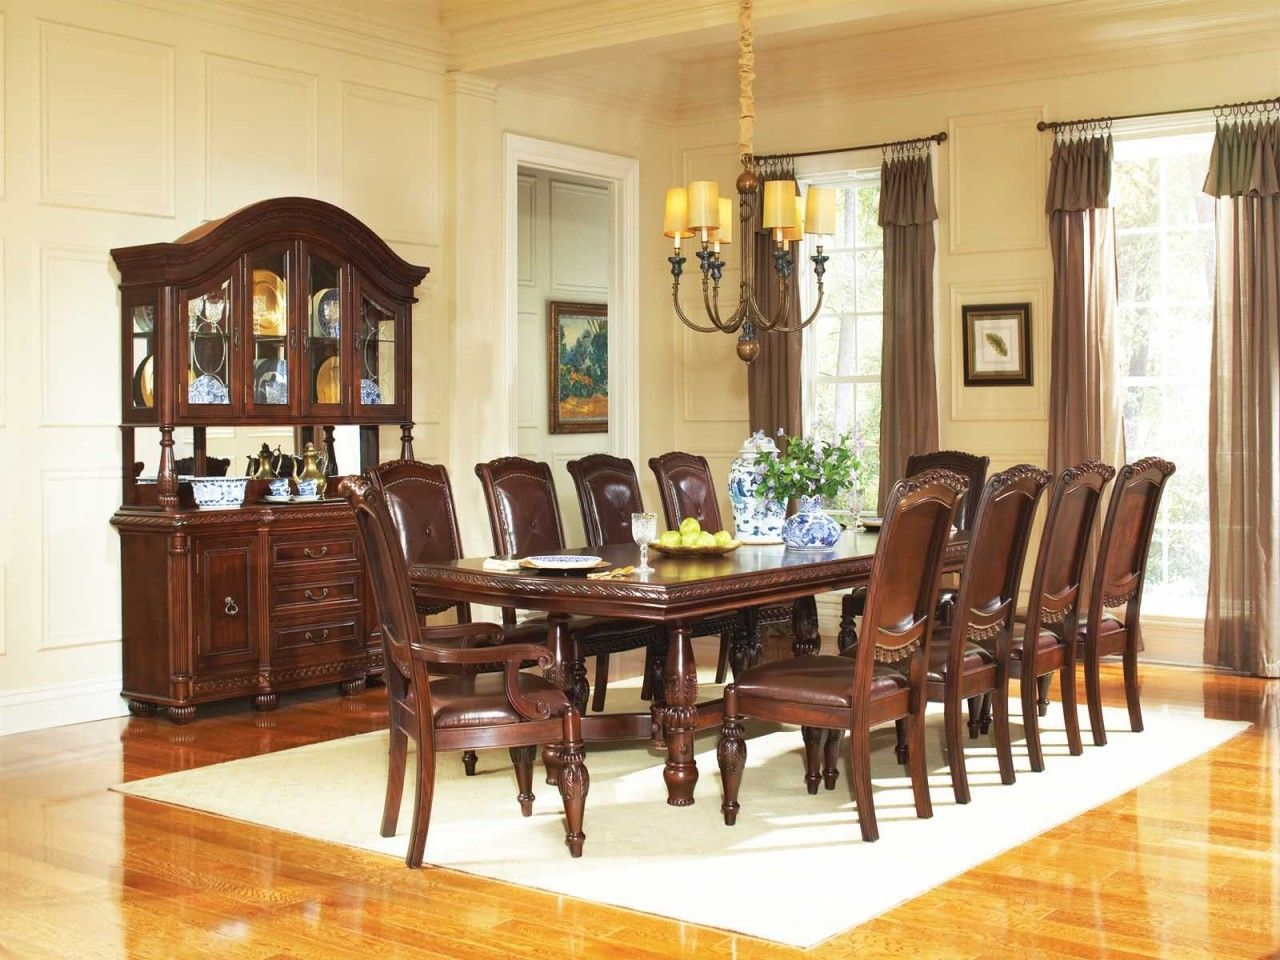 Mahogany Leather Dining Set Antoinette Dining Room Set In Cherry